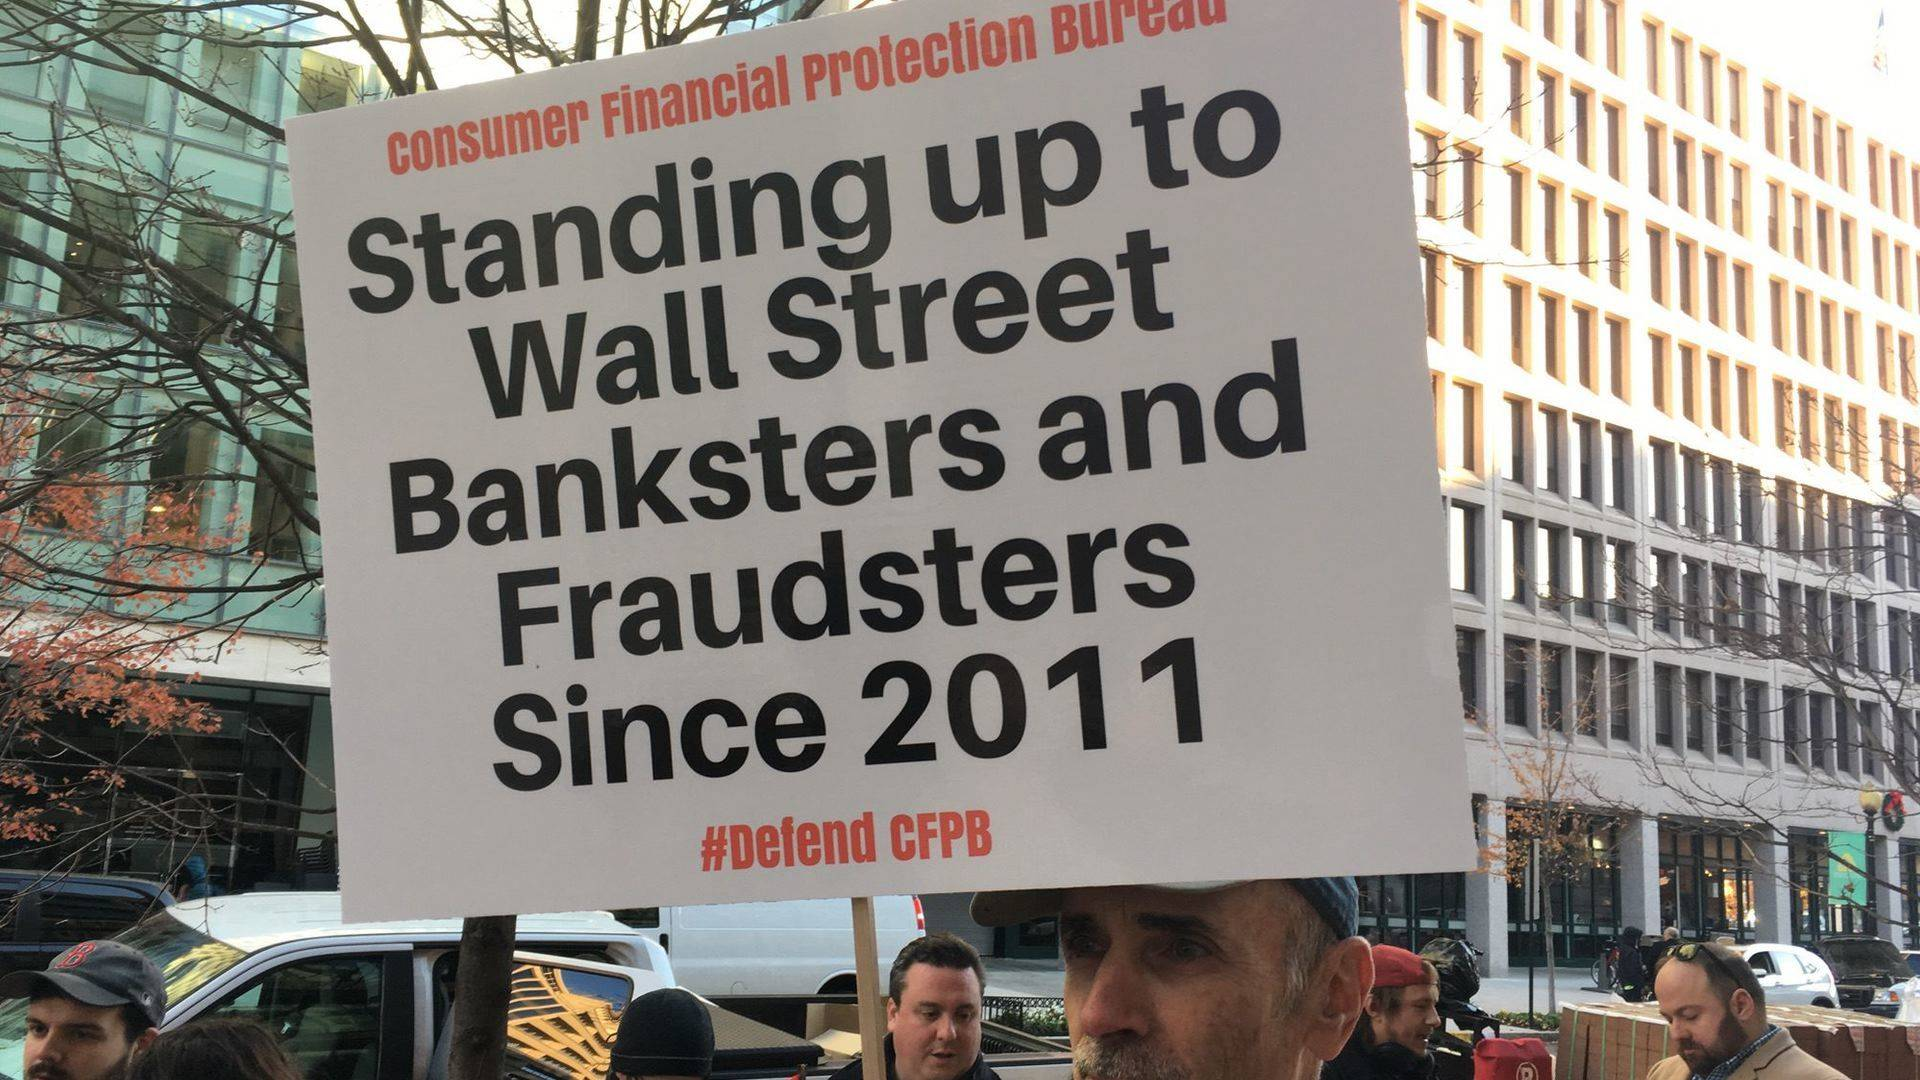 Image result for IMAGES OF CFPB CONSUMER